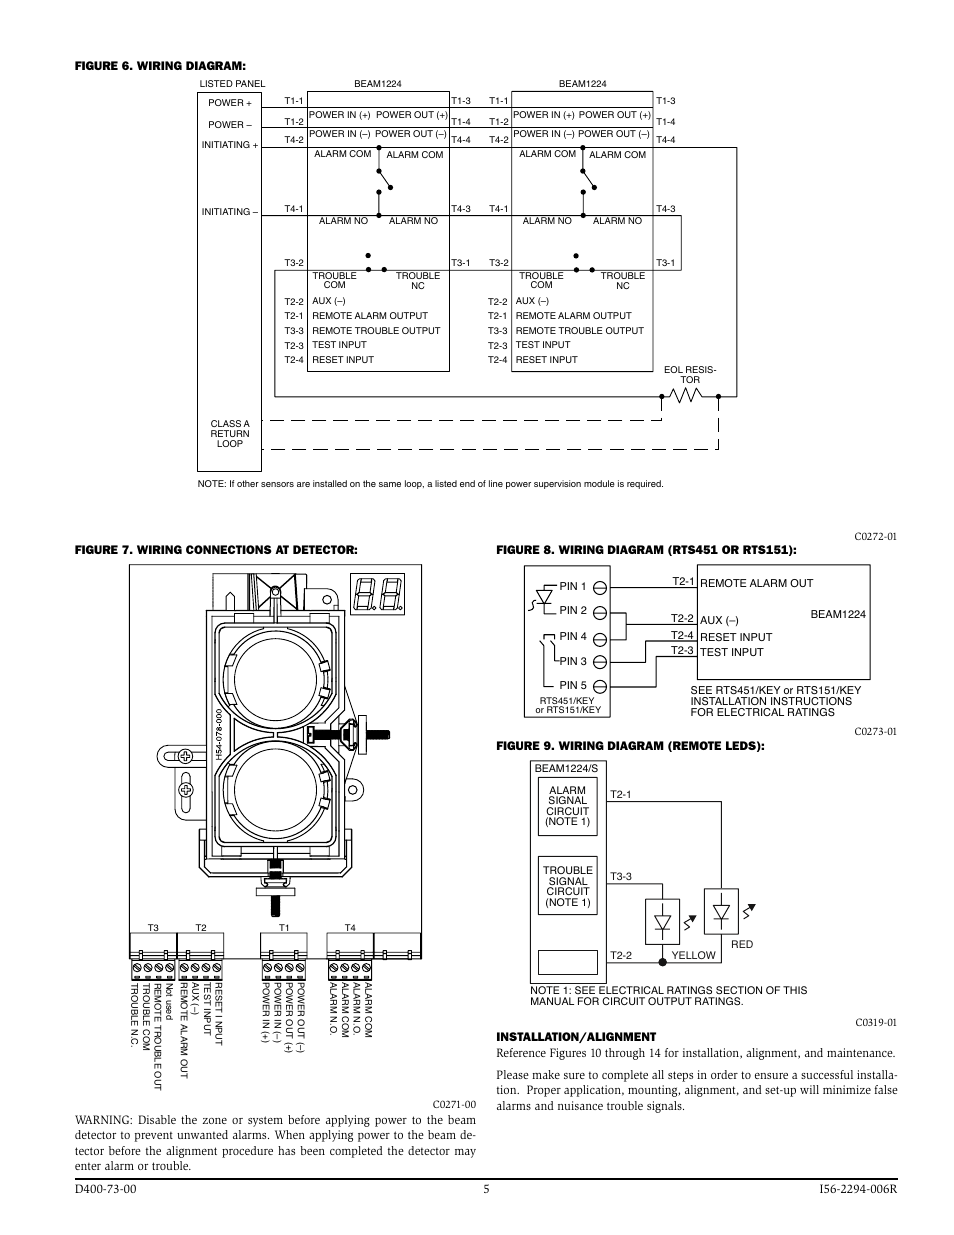 system sensor beam1224 beam1224s page5 system sensor beam1224, beam1224s user manual page 5 13 5R55E Transmission Wiring Diagram at panicattacktreatment.co